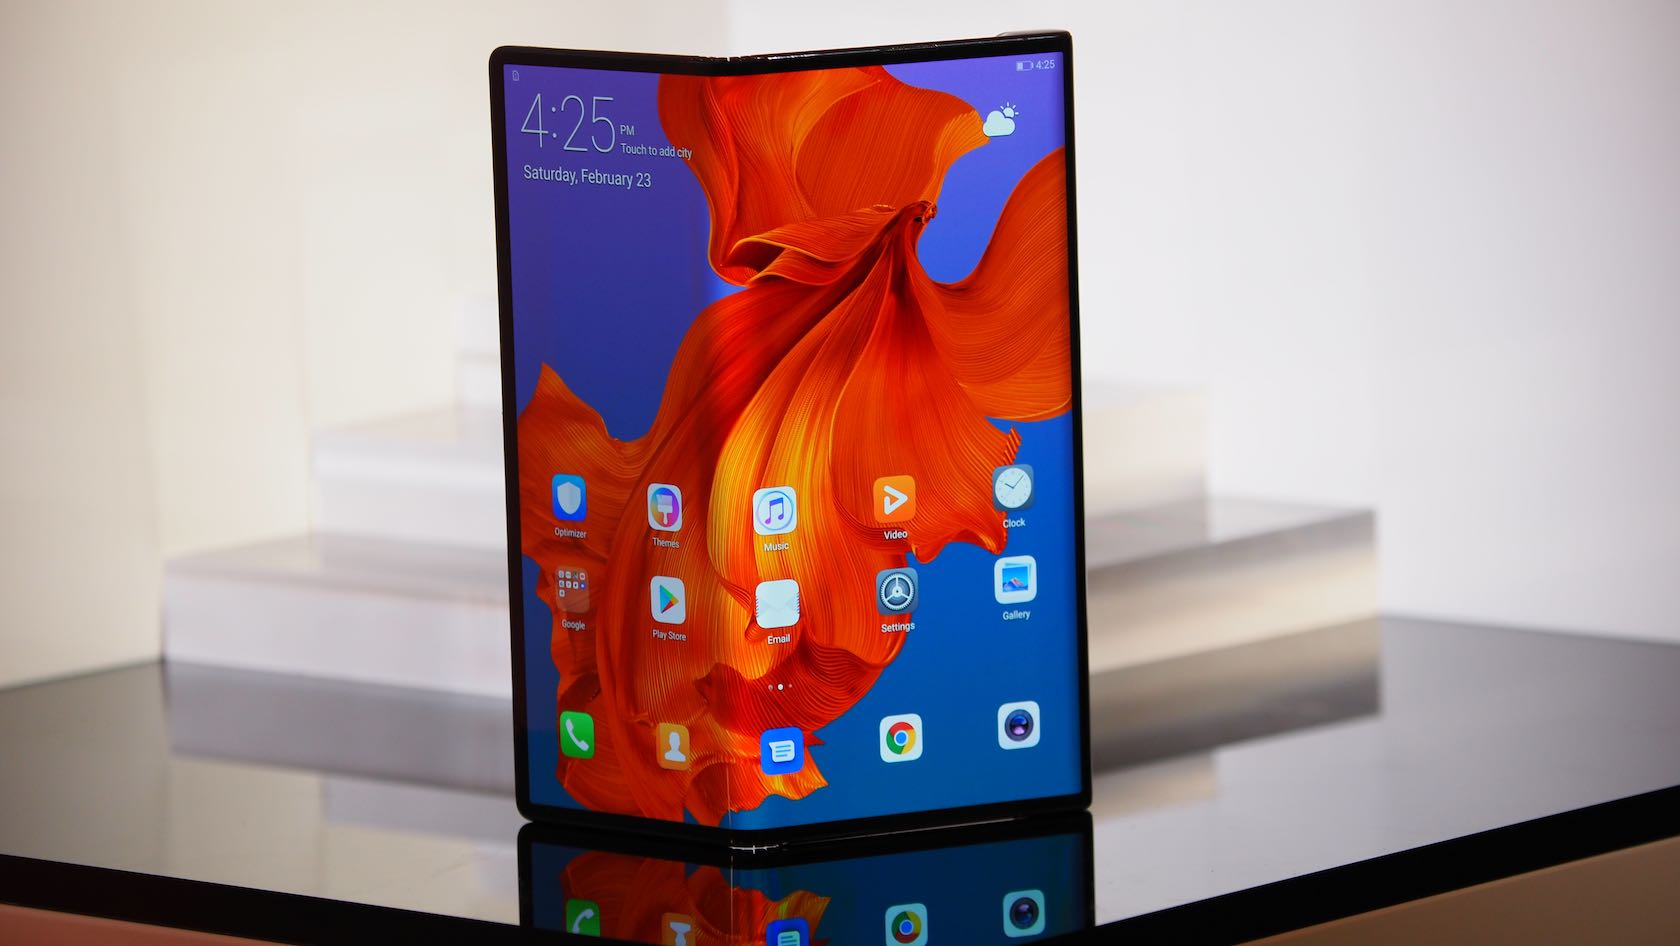 Huawei's plan to develop its own OS is an exercise in futility